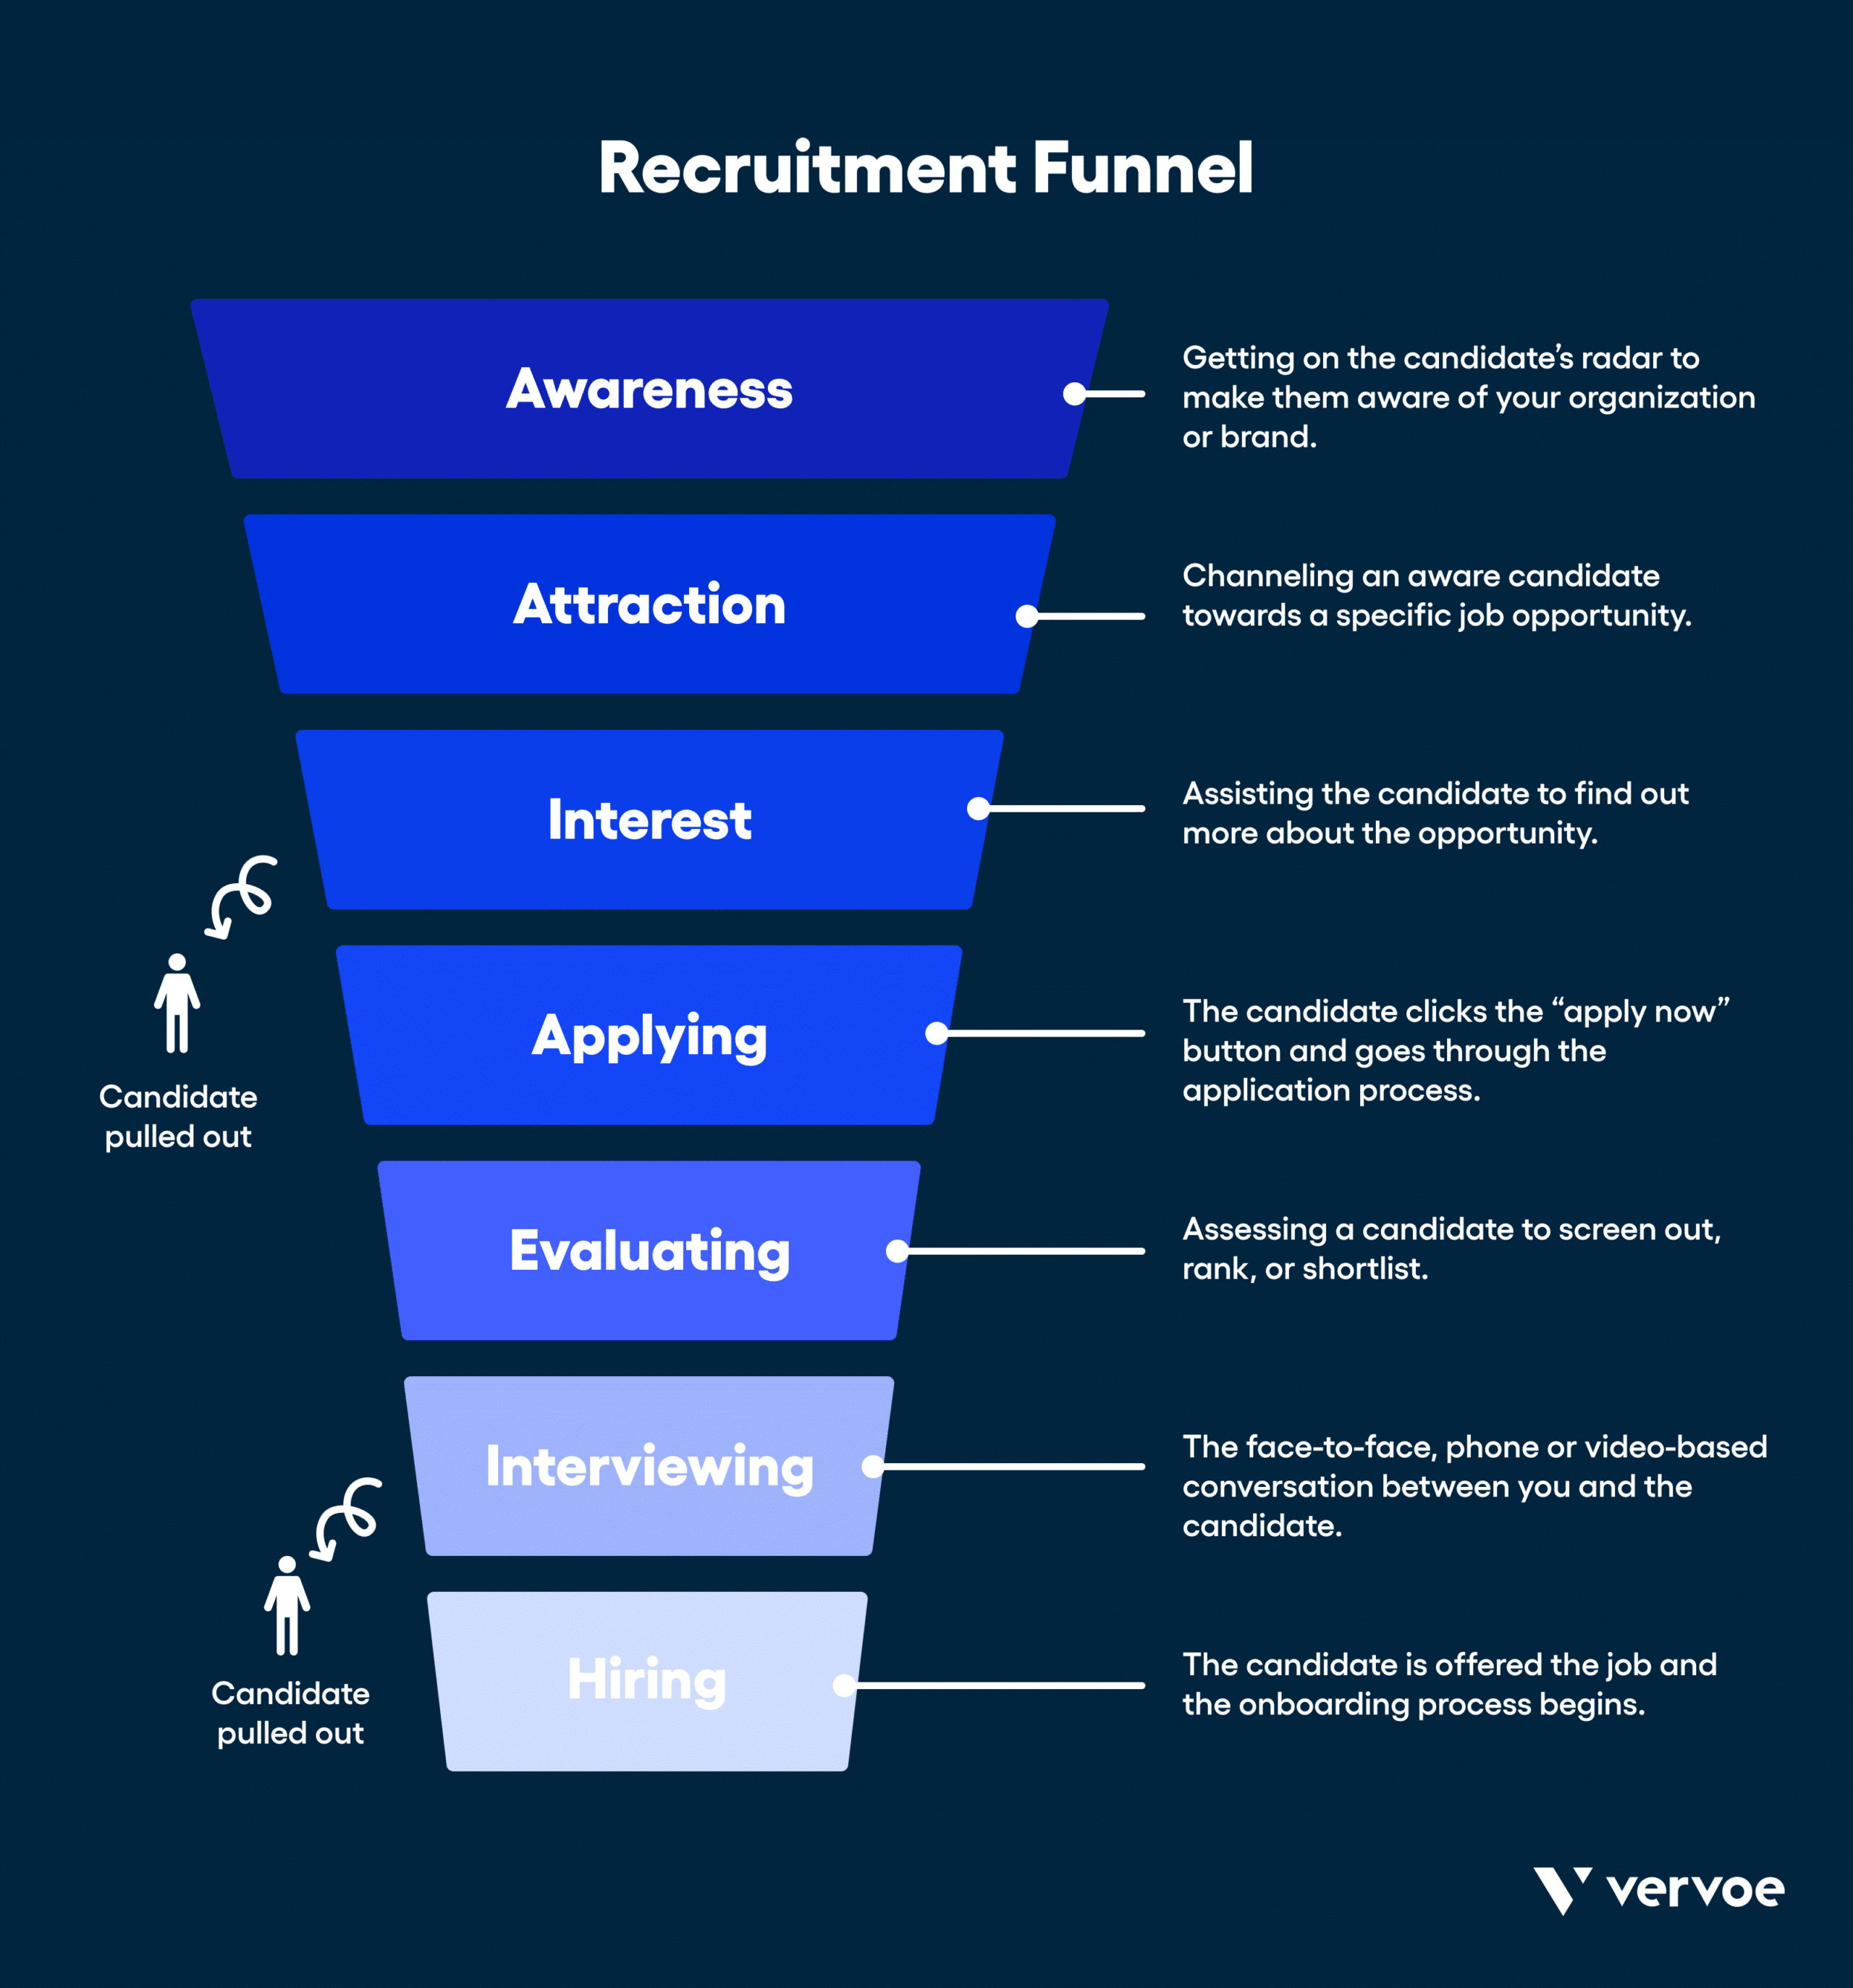 Recruitment funnel stages